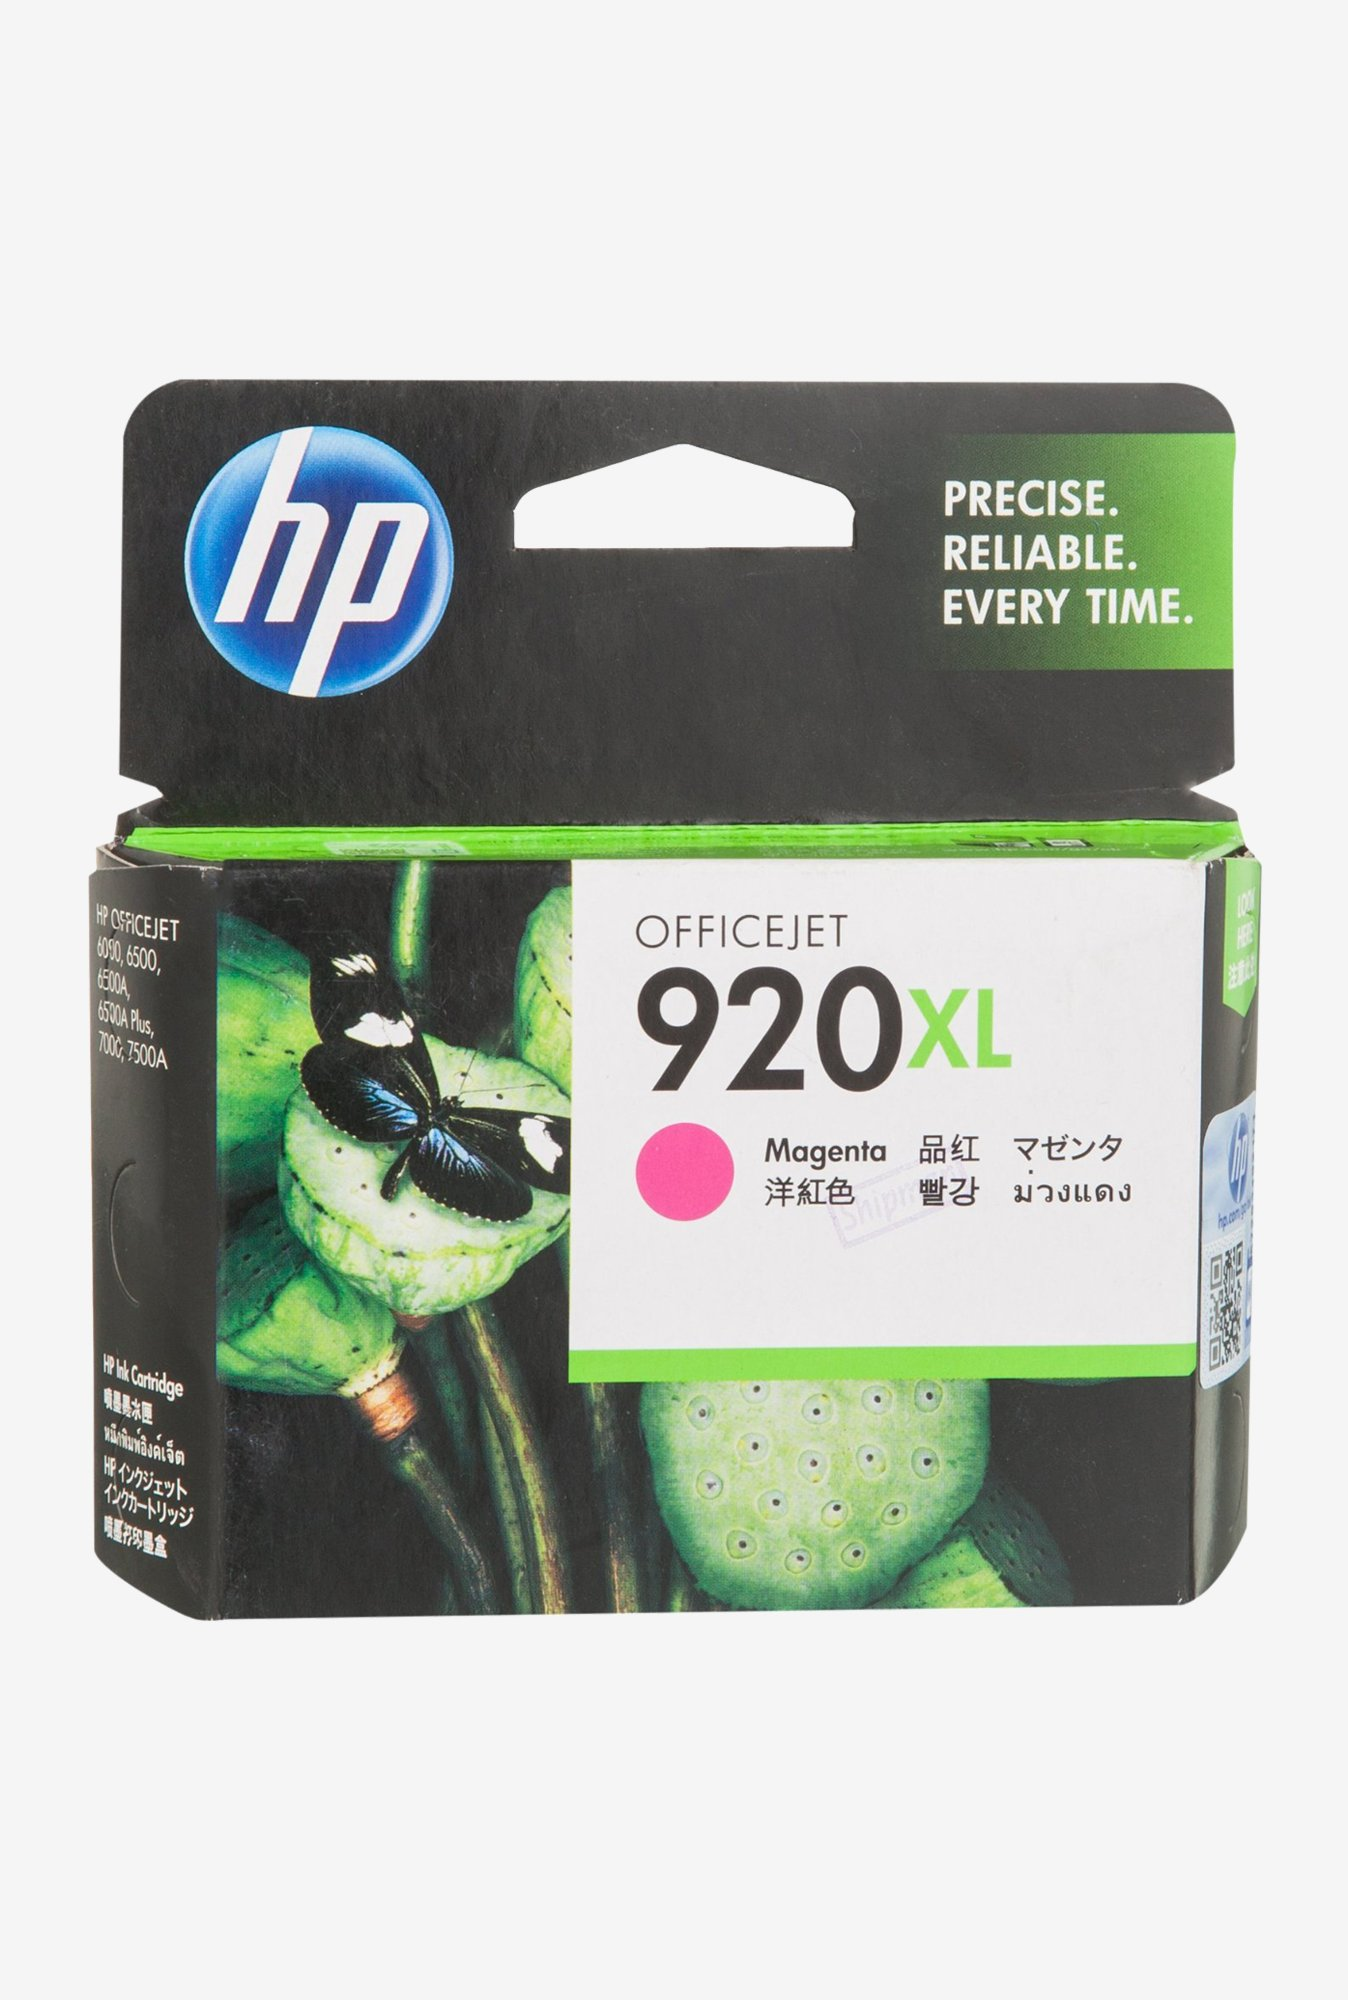 HP 920XL High Yield CD973AA Ink Cartridge Magenta